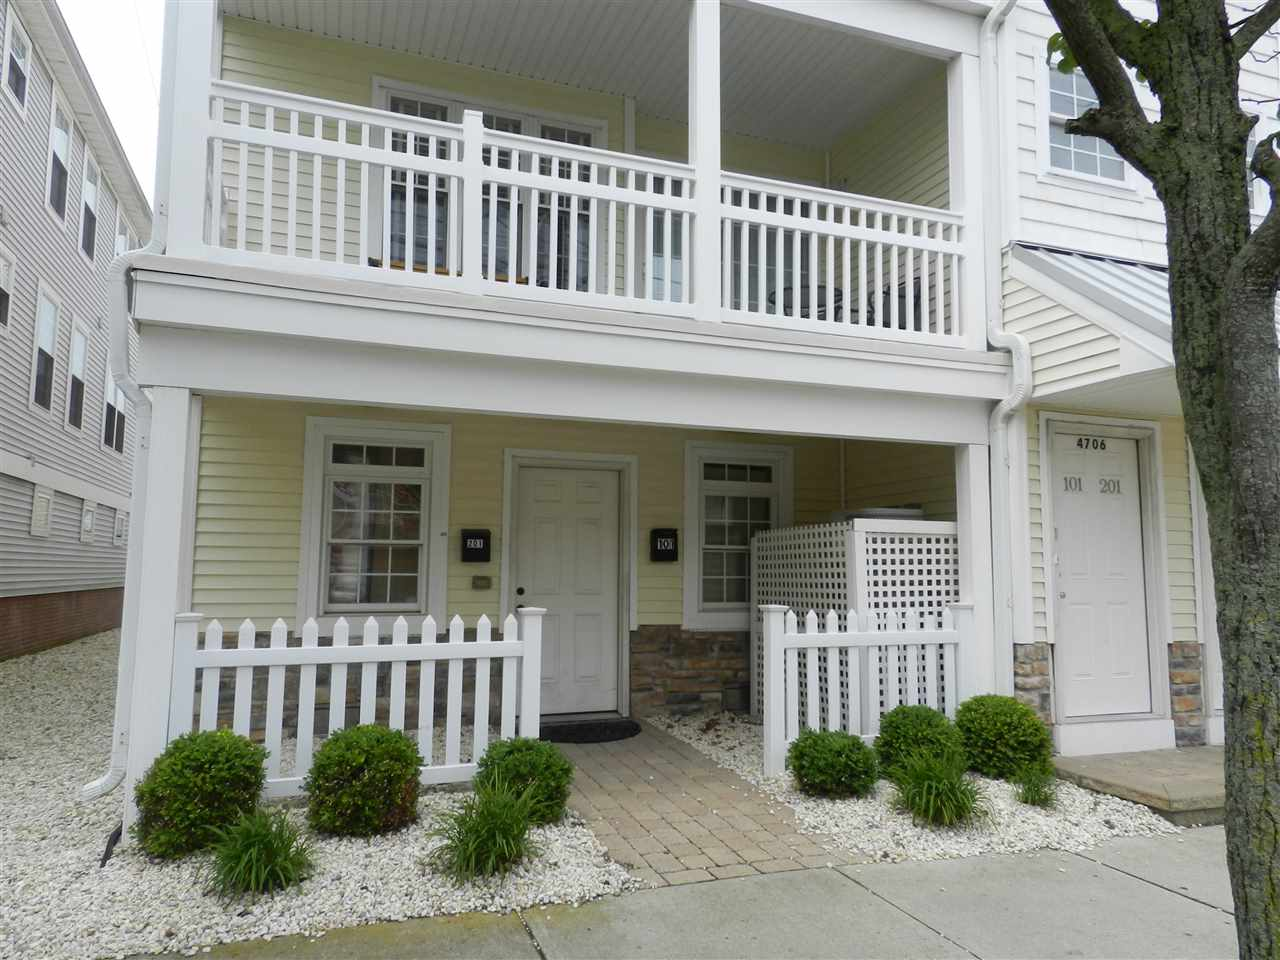 4706  Atlantic,  Wildwood, NJ